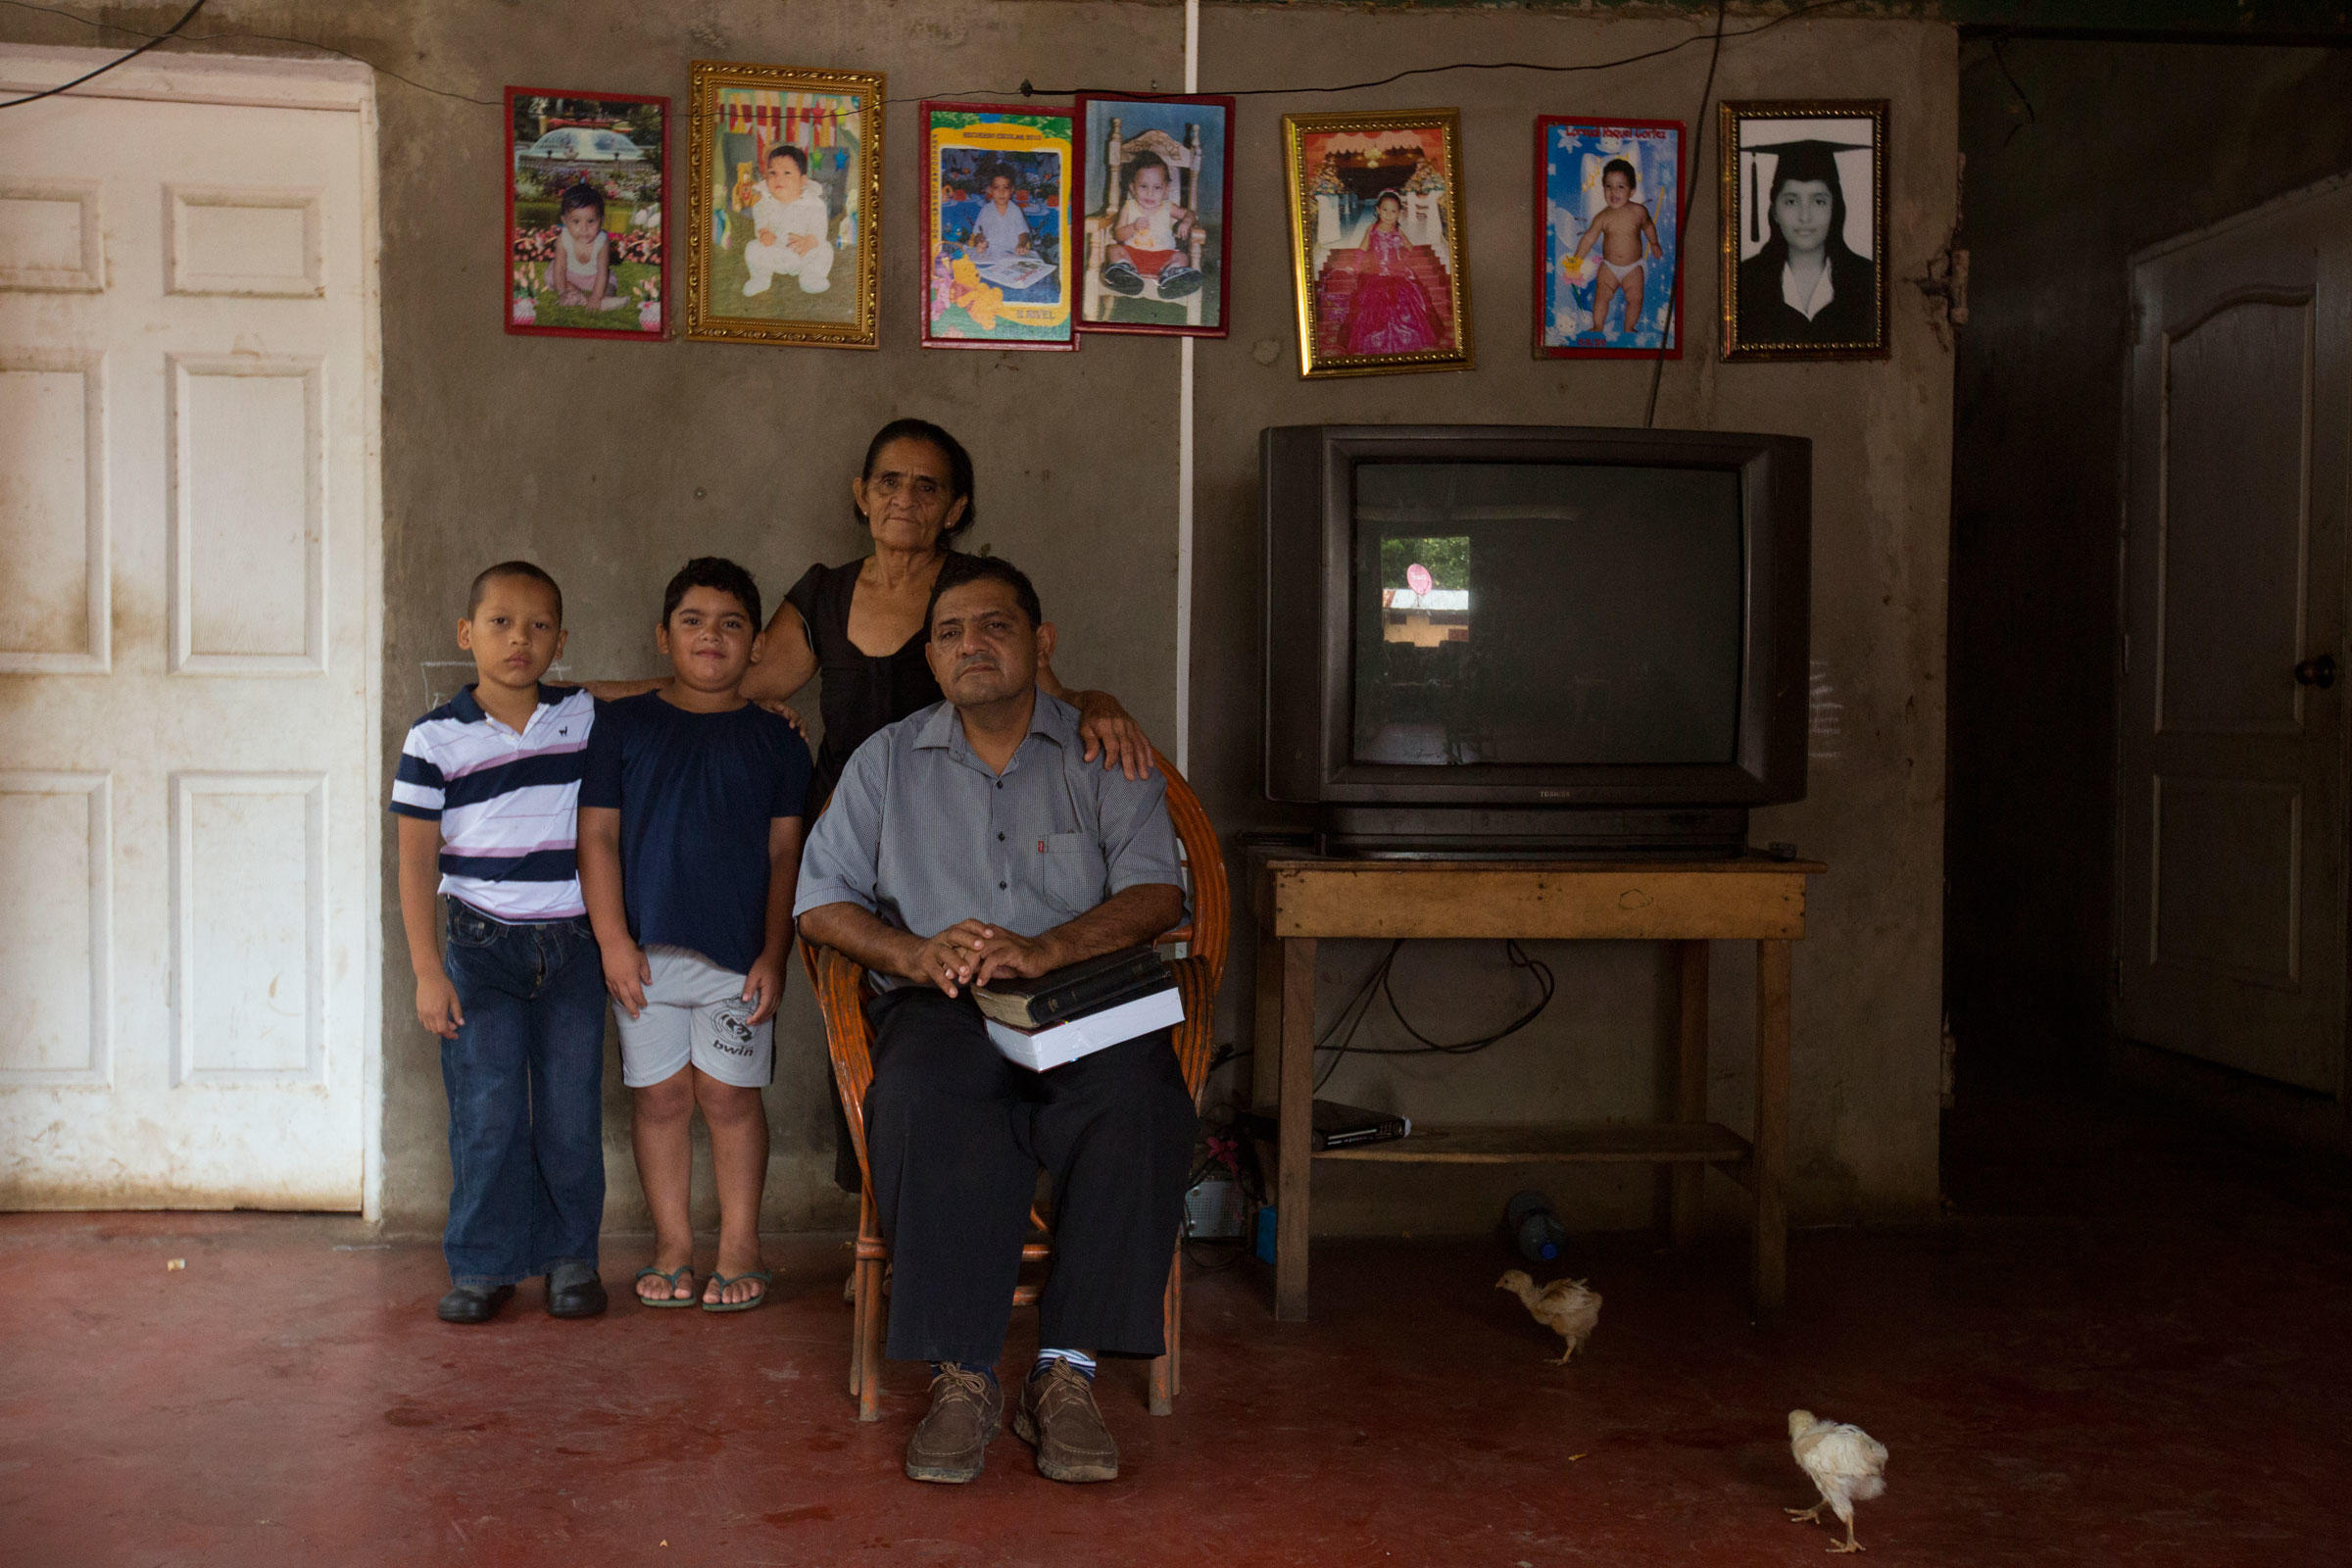 Pastor Eduardo Cortez at home with his grandsons and mother in Tola, Nicaragua, not far from where the canal will connect to the Pacific Ocean. Ivan Kashinsky